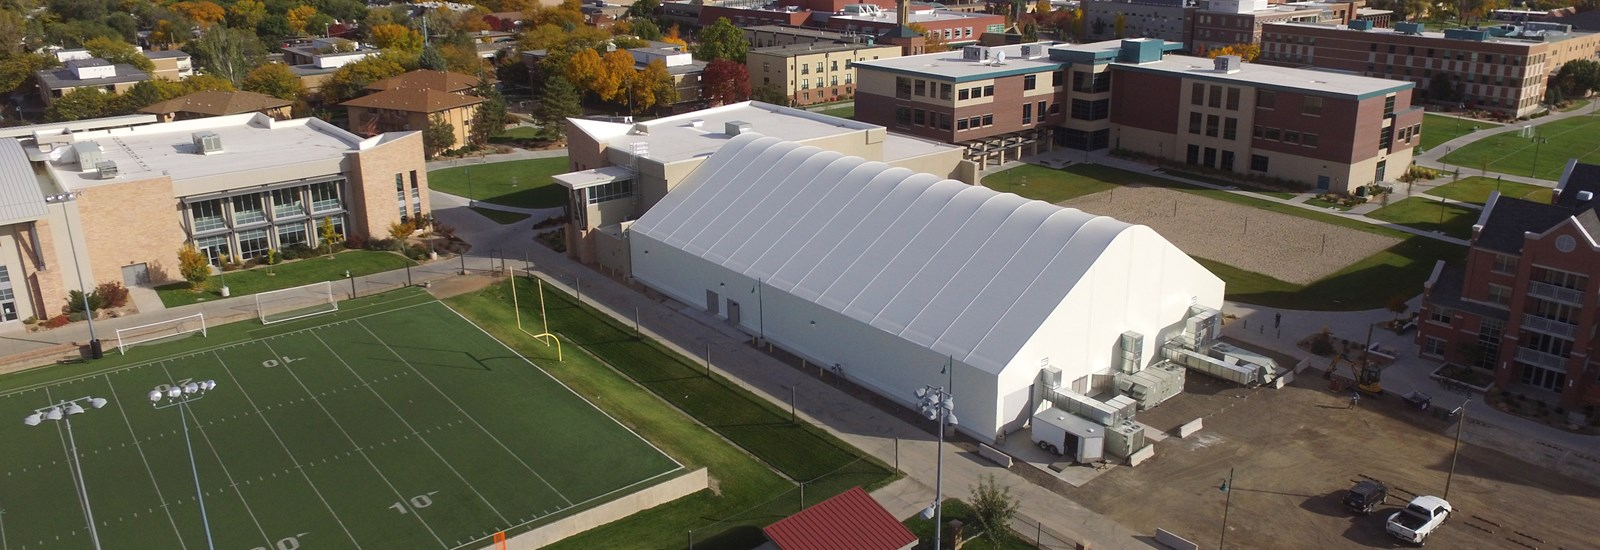 norseman-structures-CMU-sports-facility